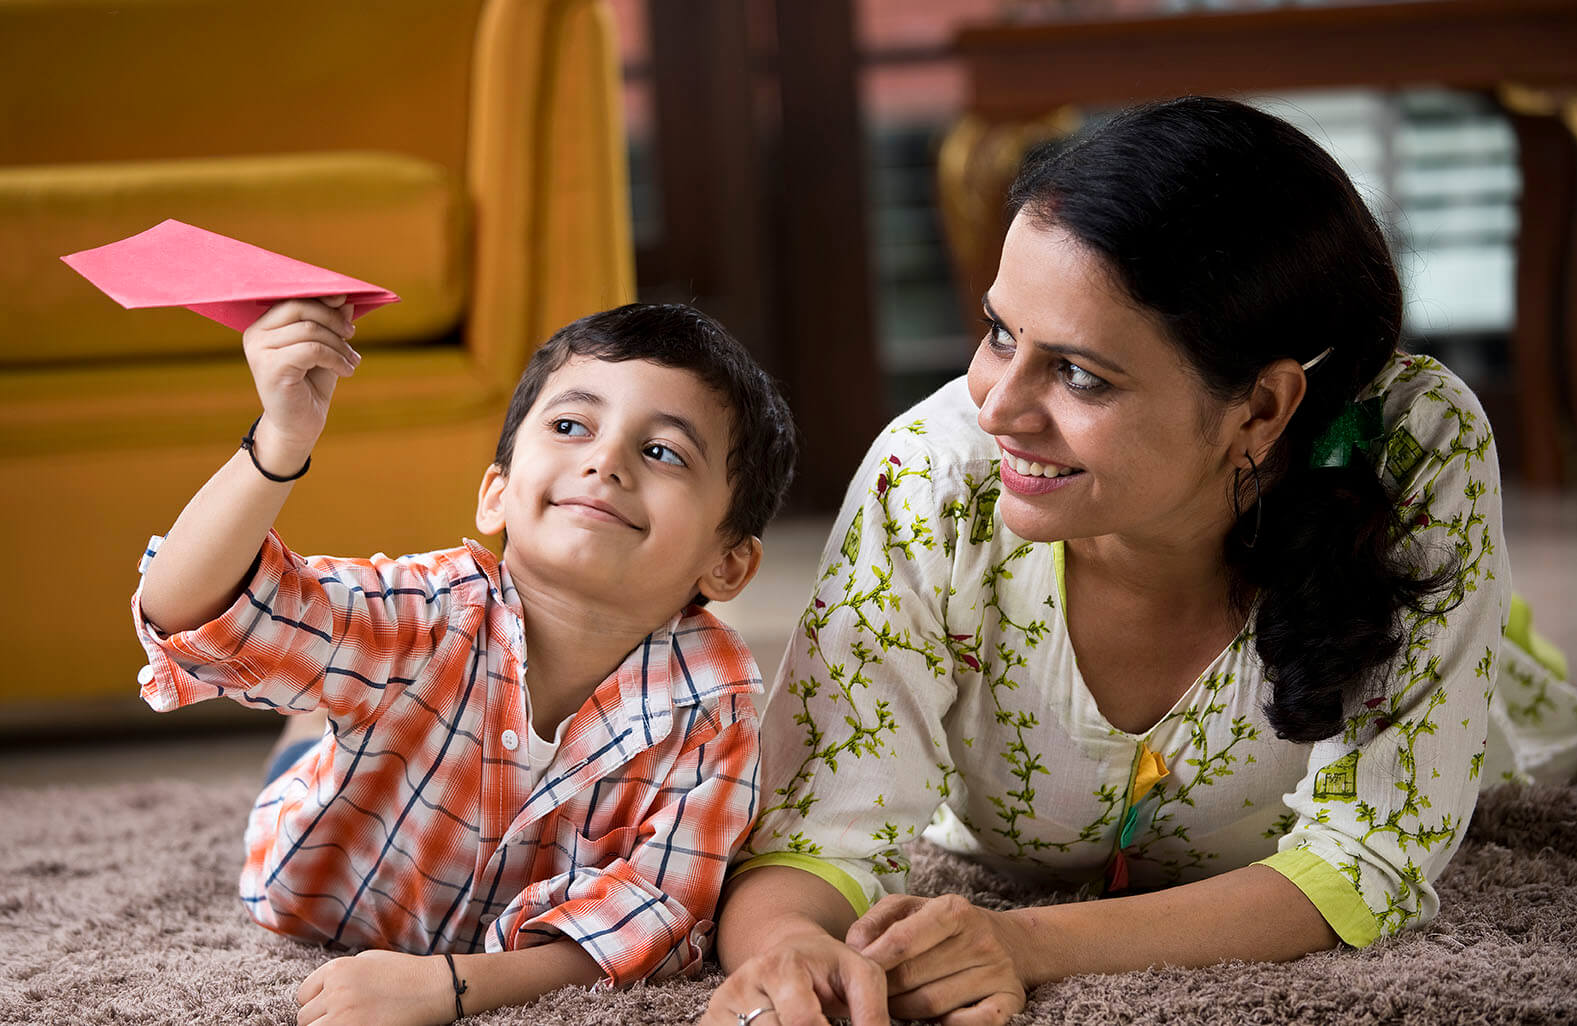 Mother and son playing with paper airplane.